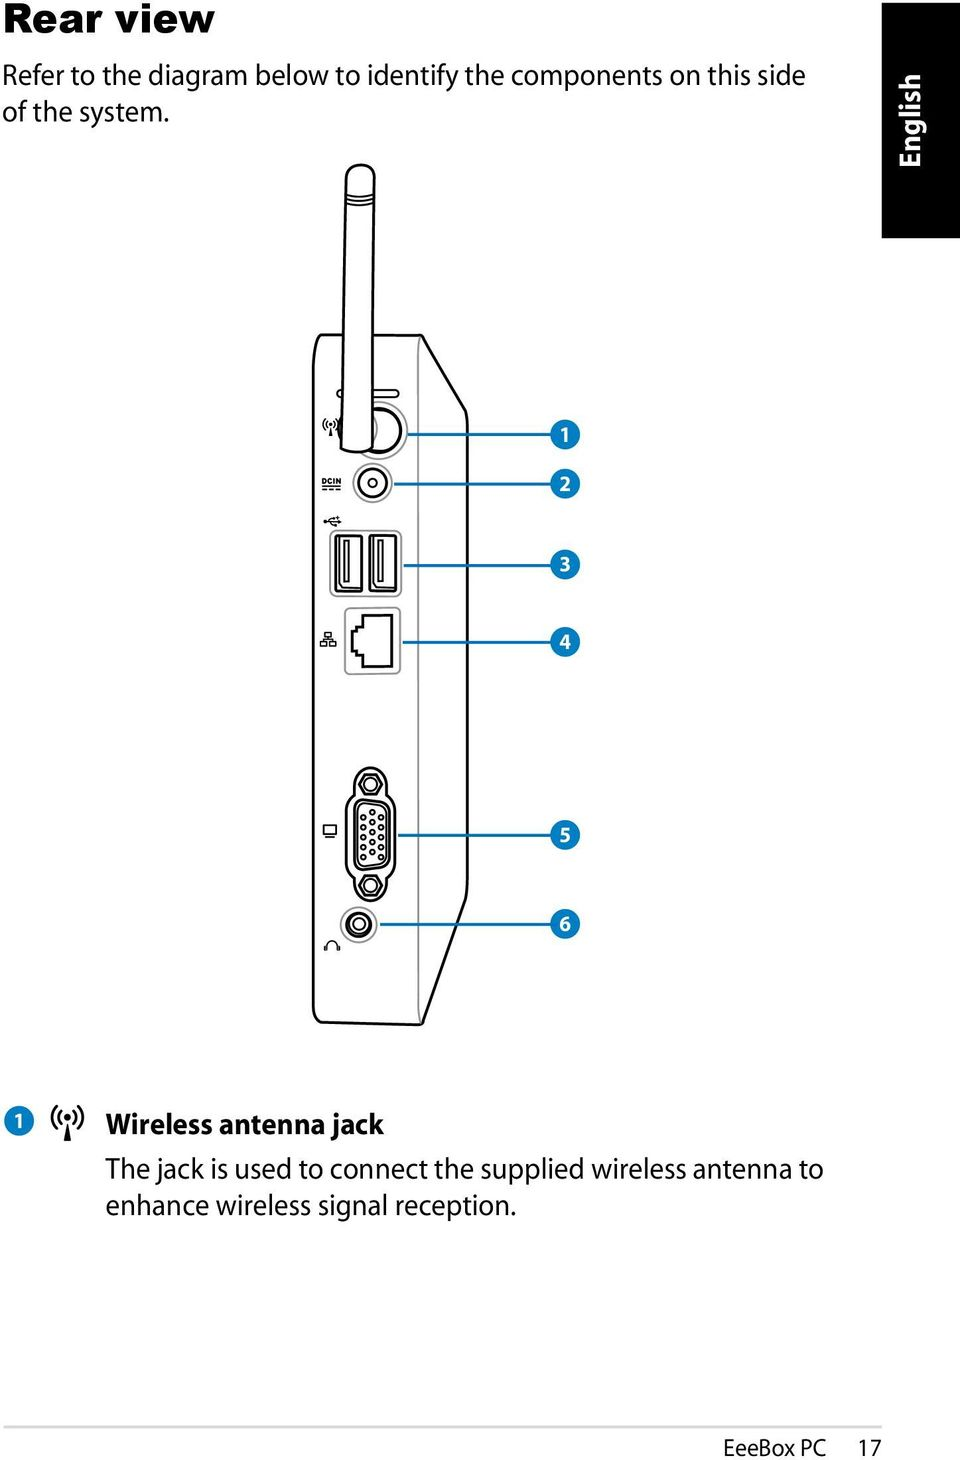 English 1 2 3 4 5 6 1 Wireless antenna jack The jack is used